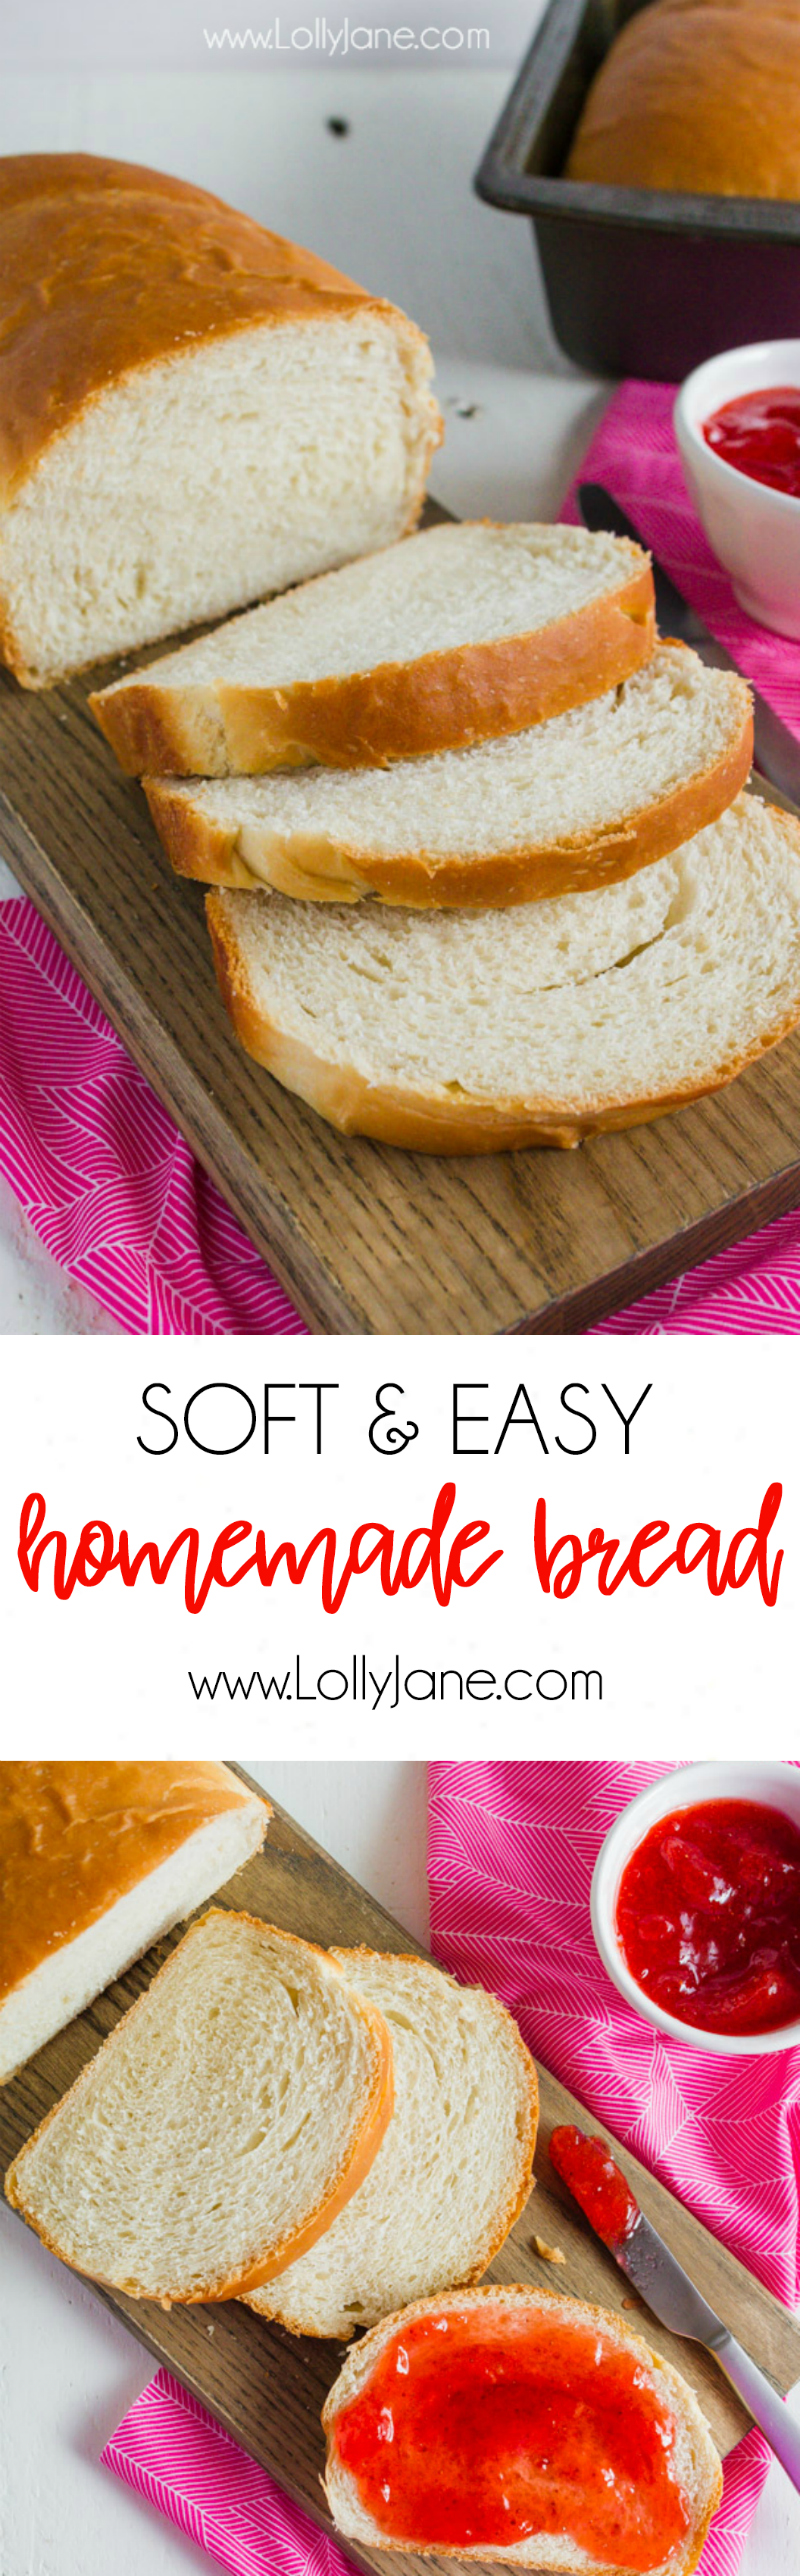 This basic homemade bread recipe is so good! Soft and easy white bread recipe, love it! Just like Nana used to make, this is our go-to homemade bread recipe!